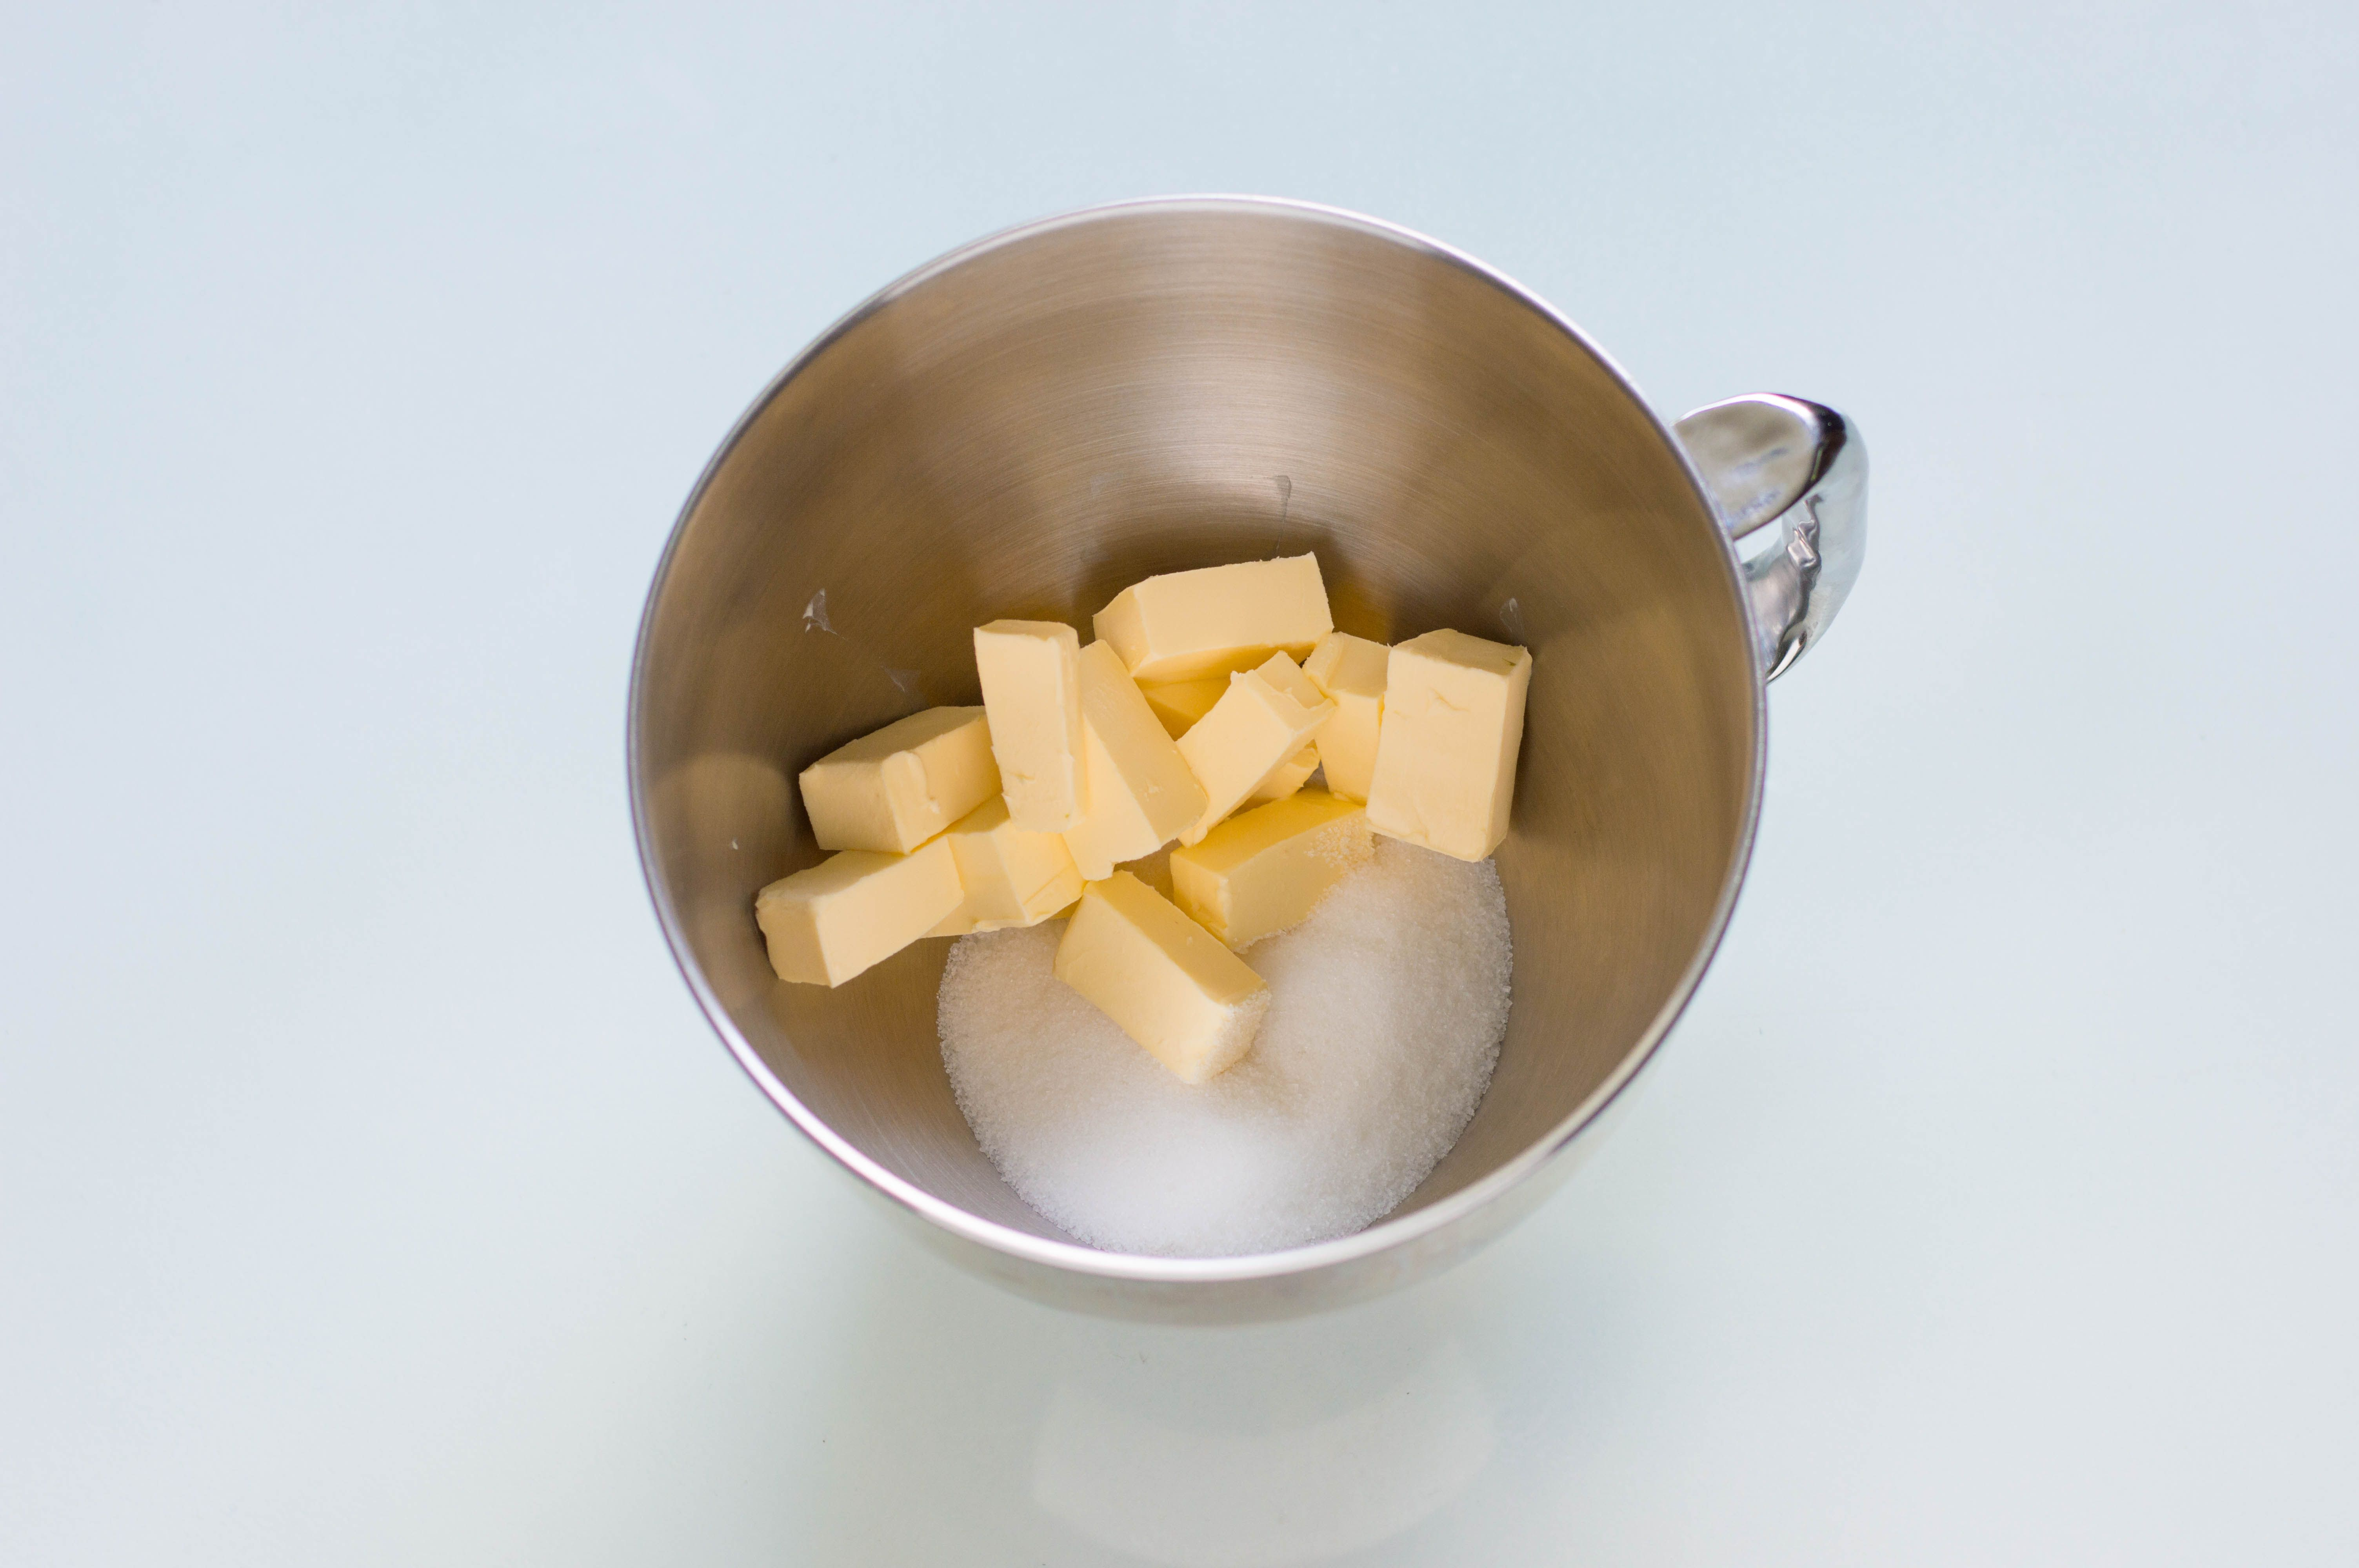 Combine butter and sugar in a mixing bowl